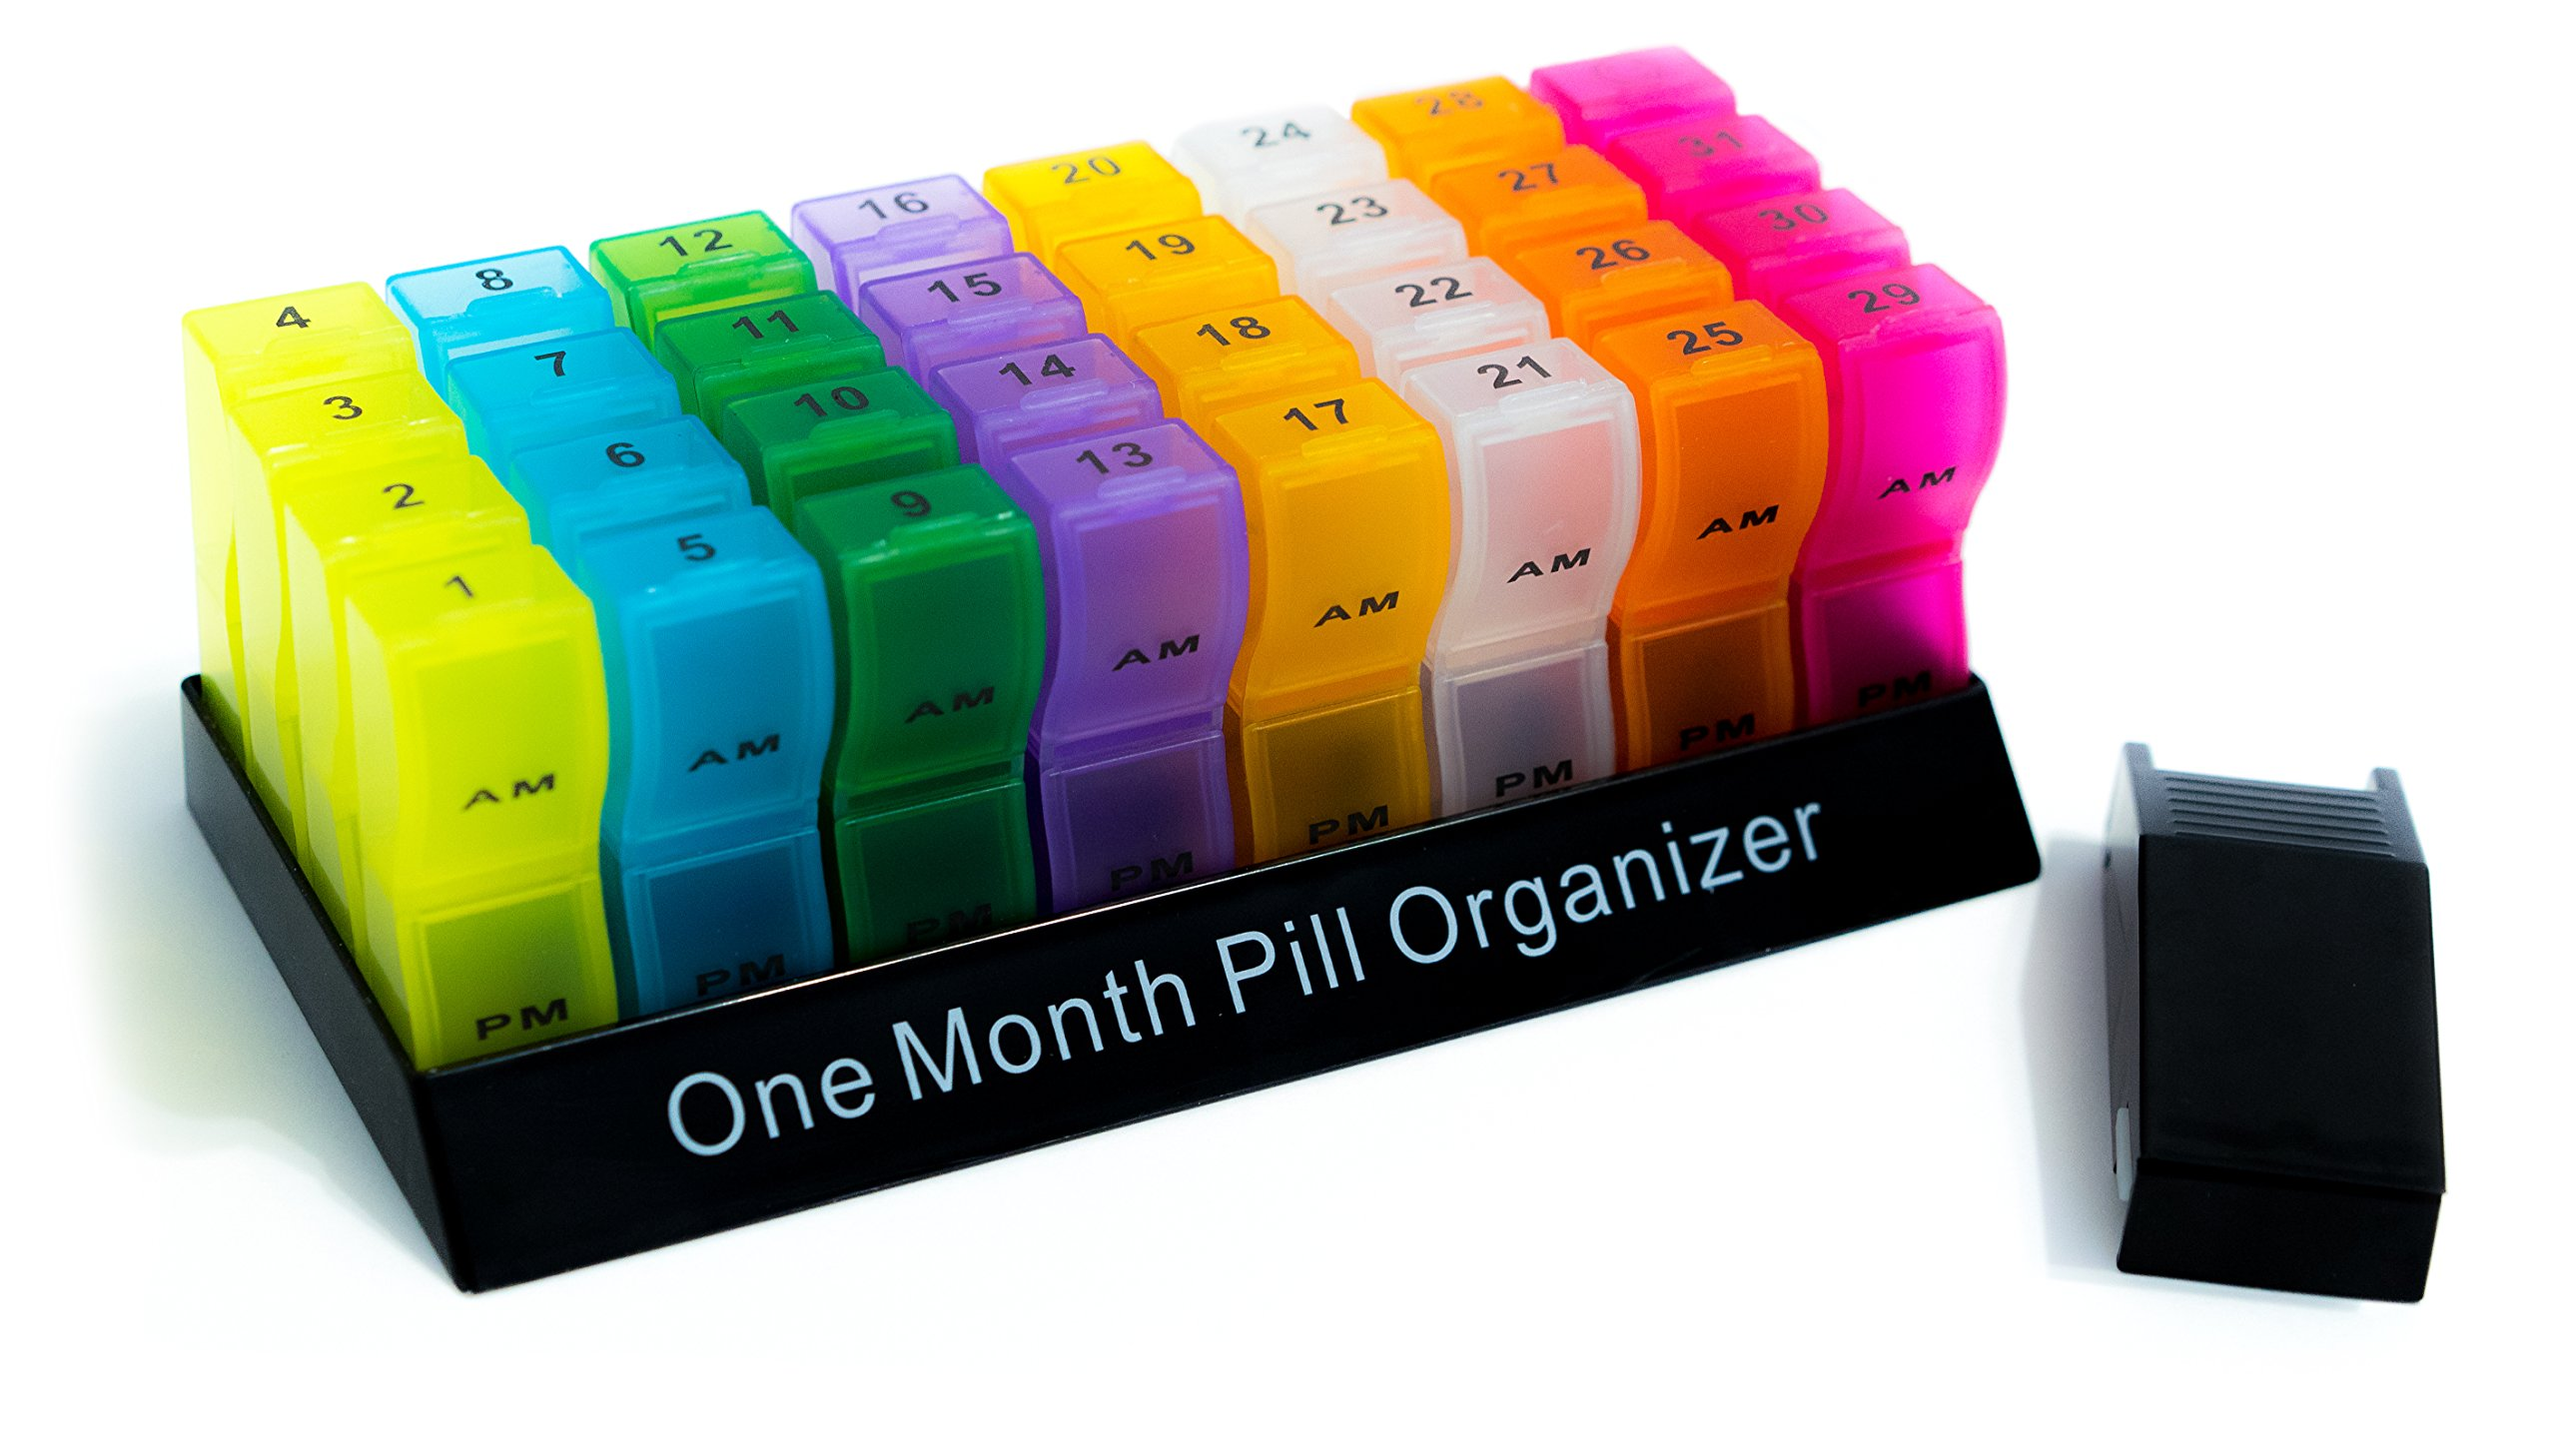 Product Choices Pill Organizer | Pill Box | Pill Case | Premium Quality & Variant Color | Free Pill Cutter | 31 Days AM/PM | Easy Snap-On and Close Lid | BPA Free | Recyclable | Large Compartments